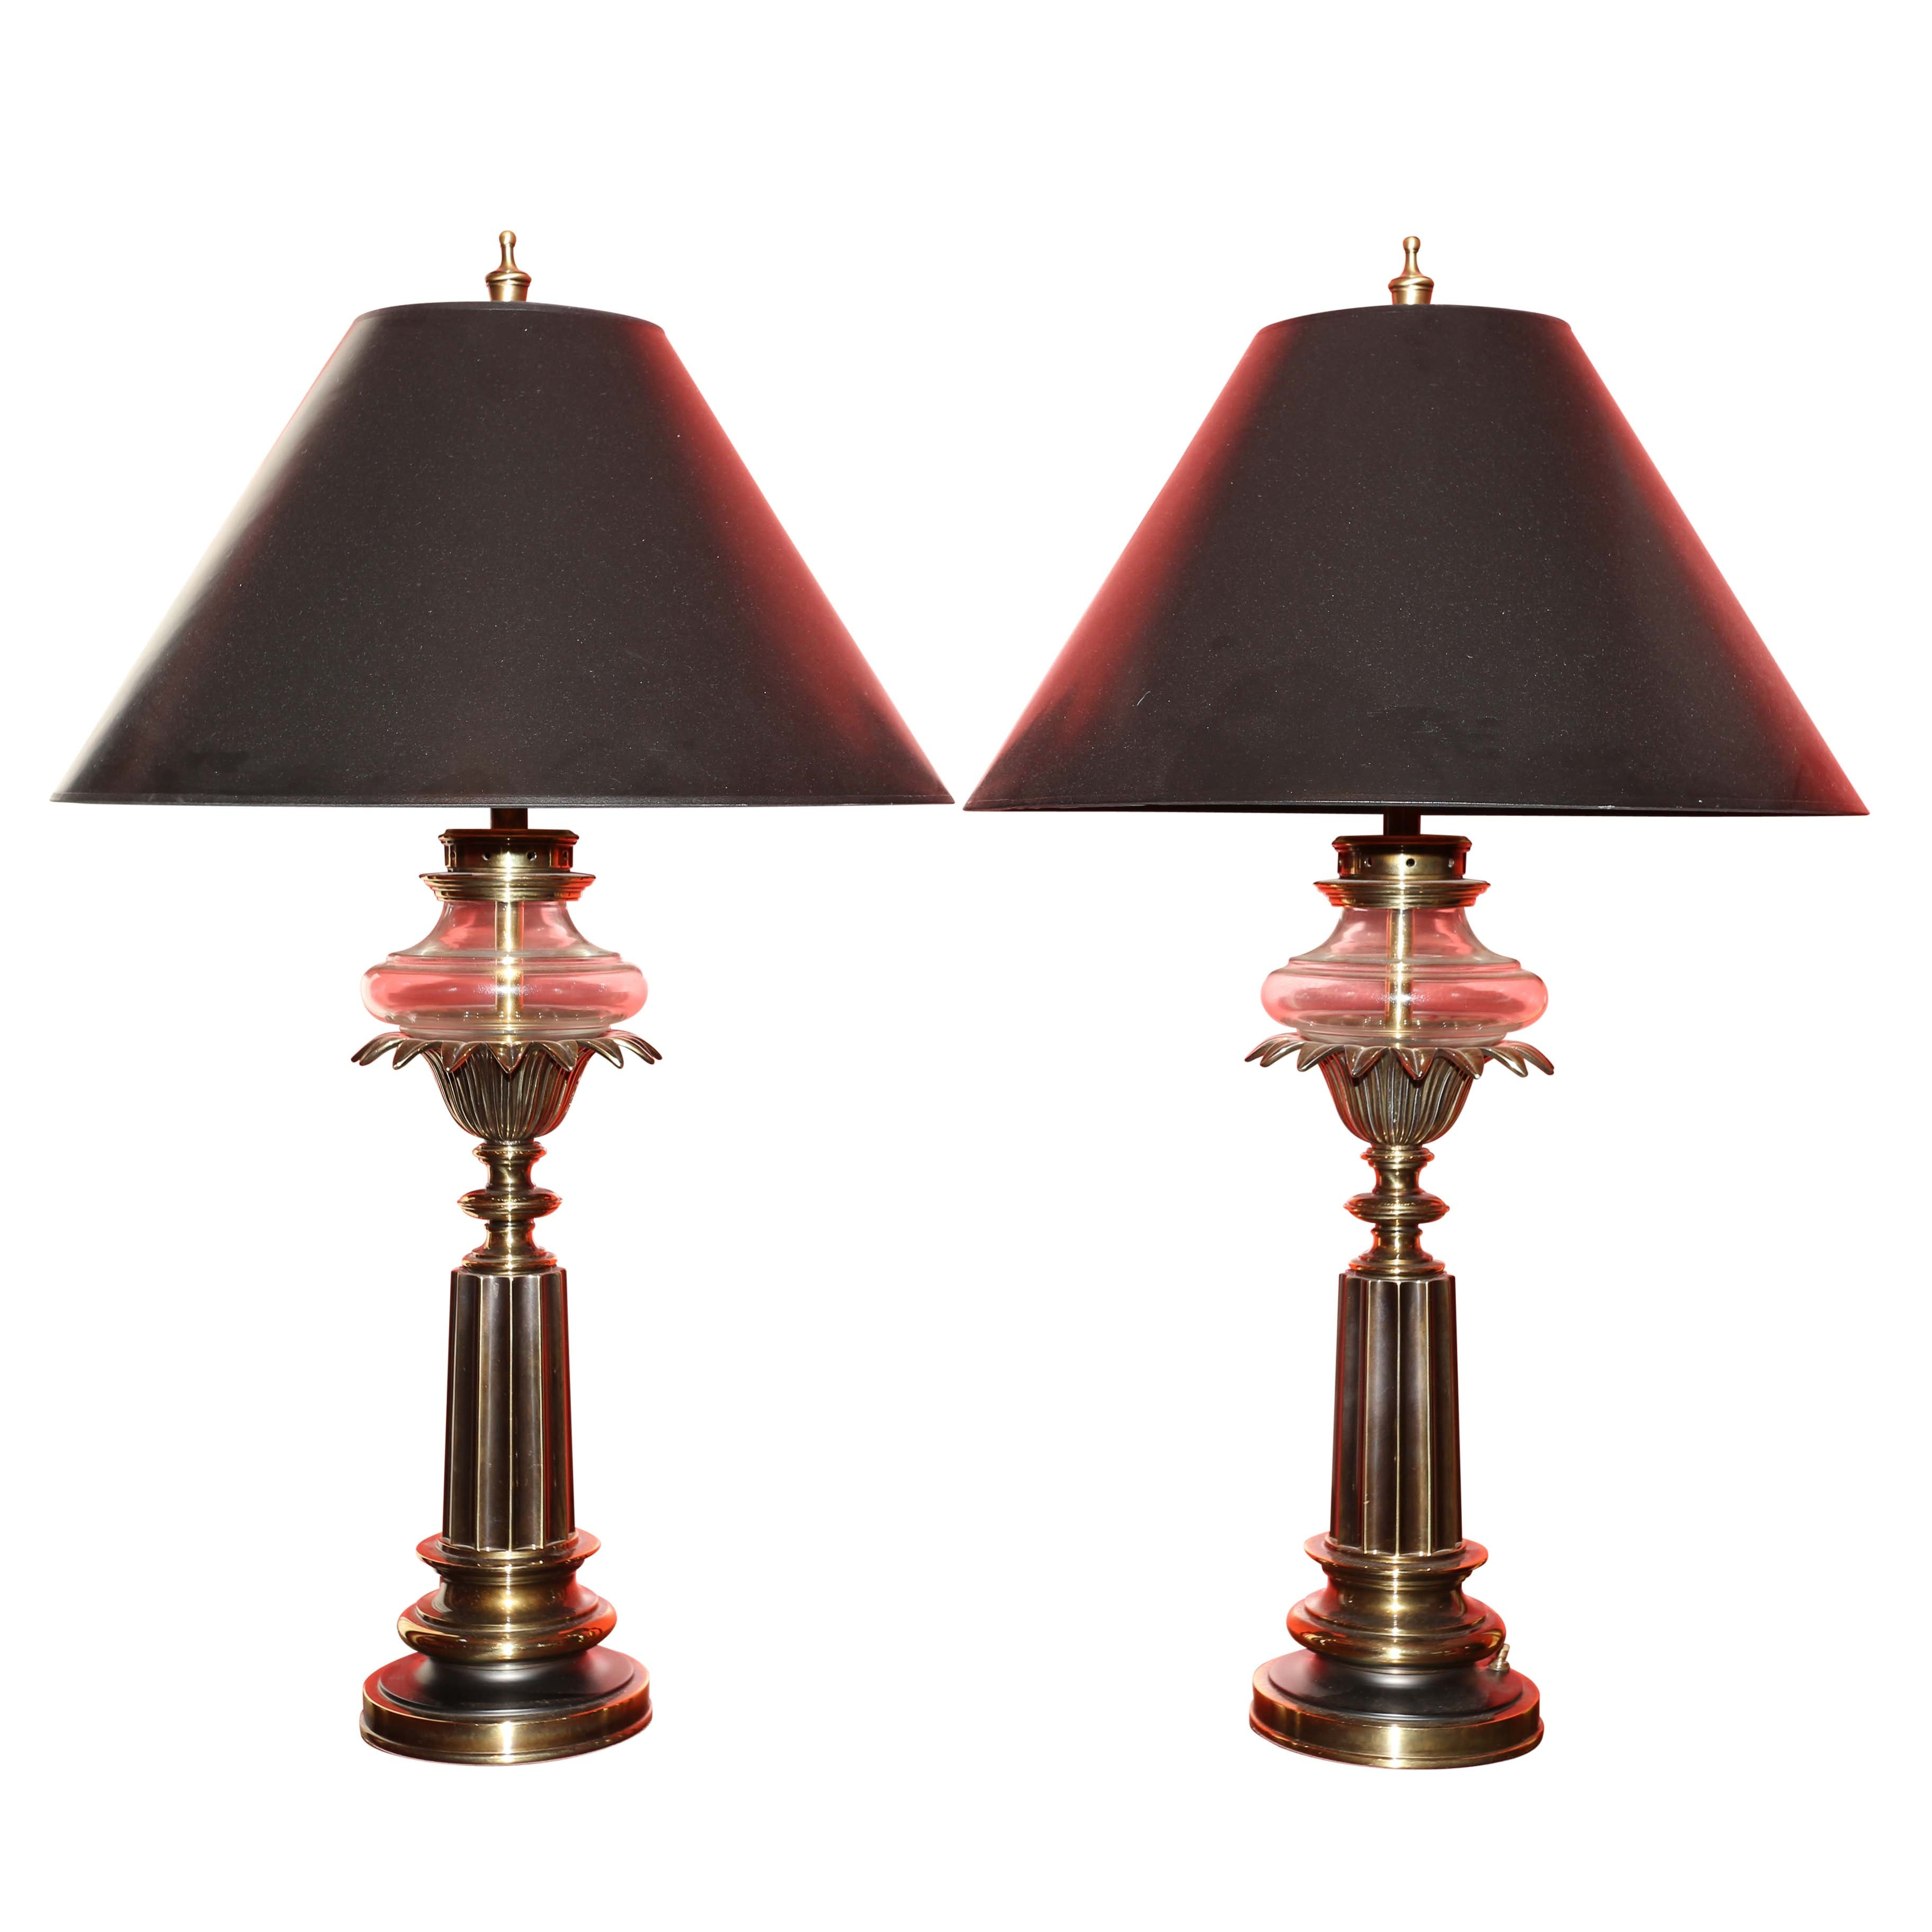 The Stiffel Company Brass and Glass Table Lamps